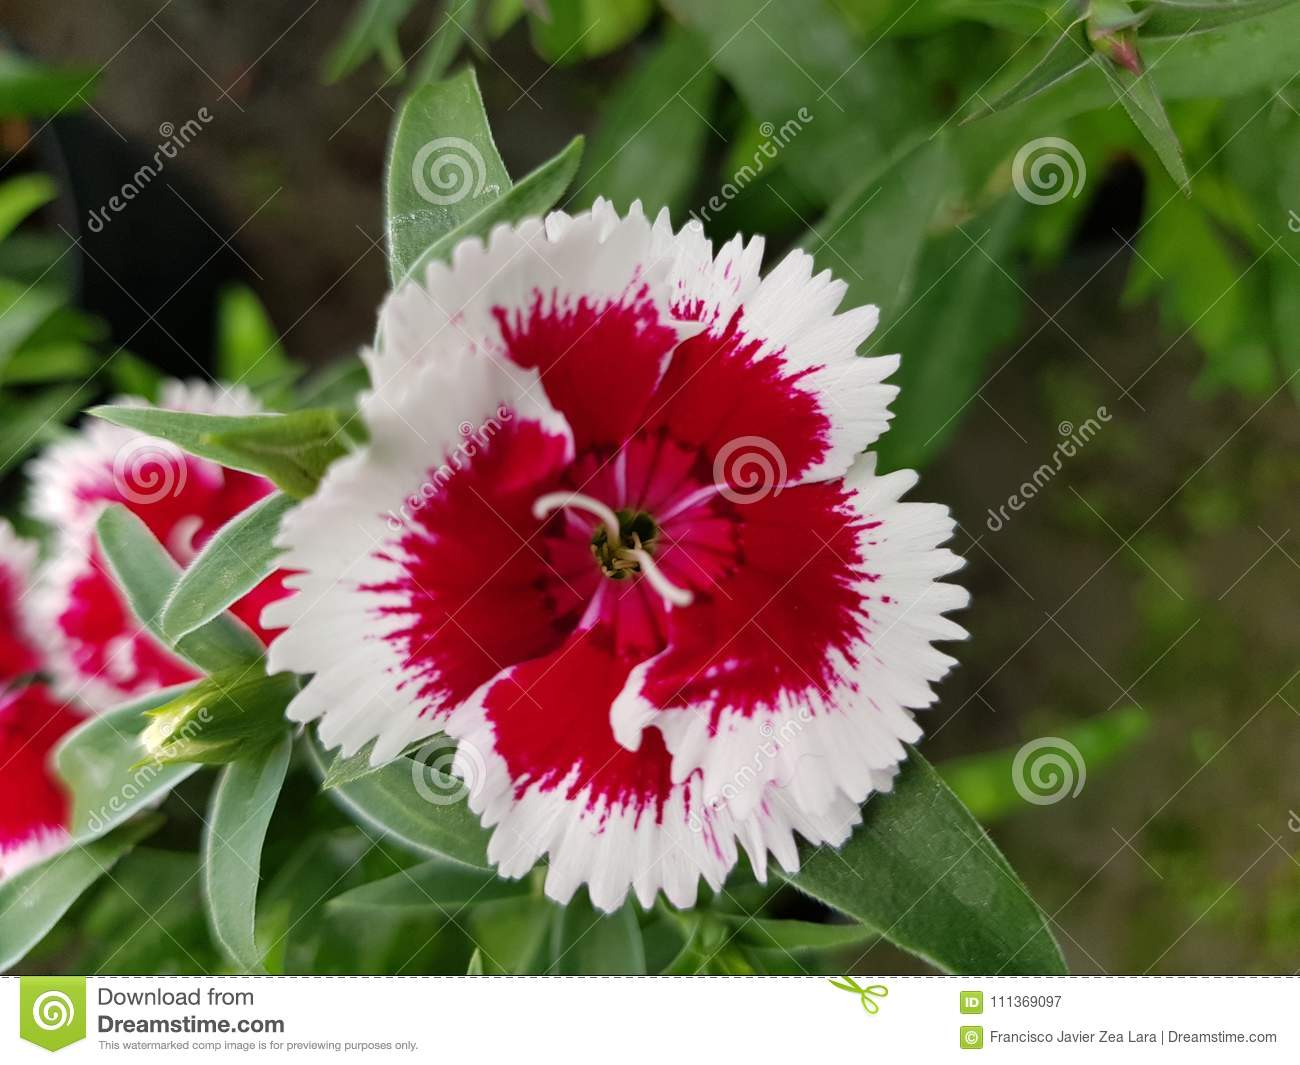 Red Carnation Flower With White Edge In A Garden Stock Image - Image ...